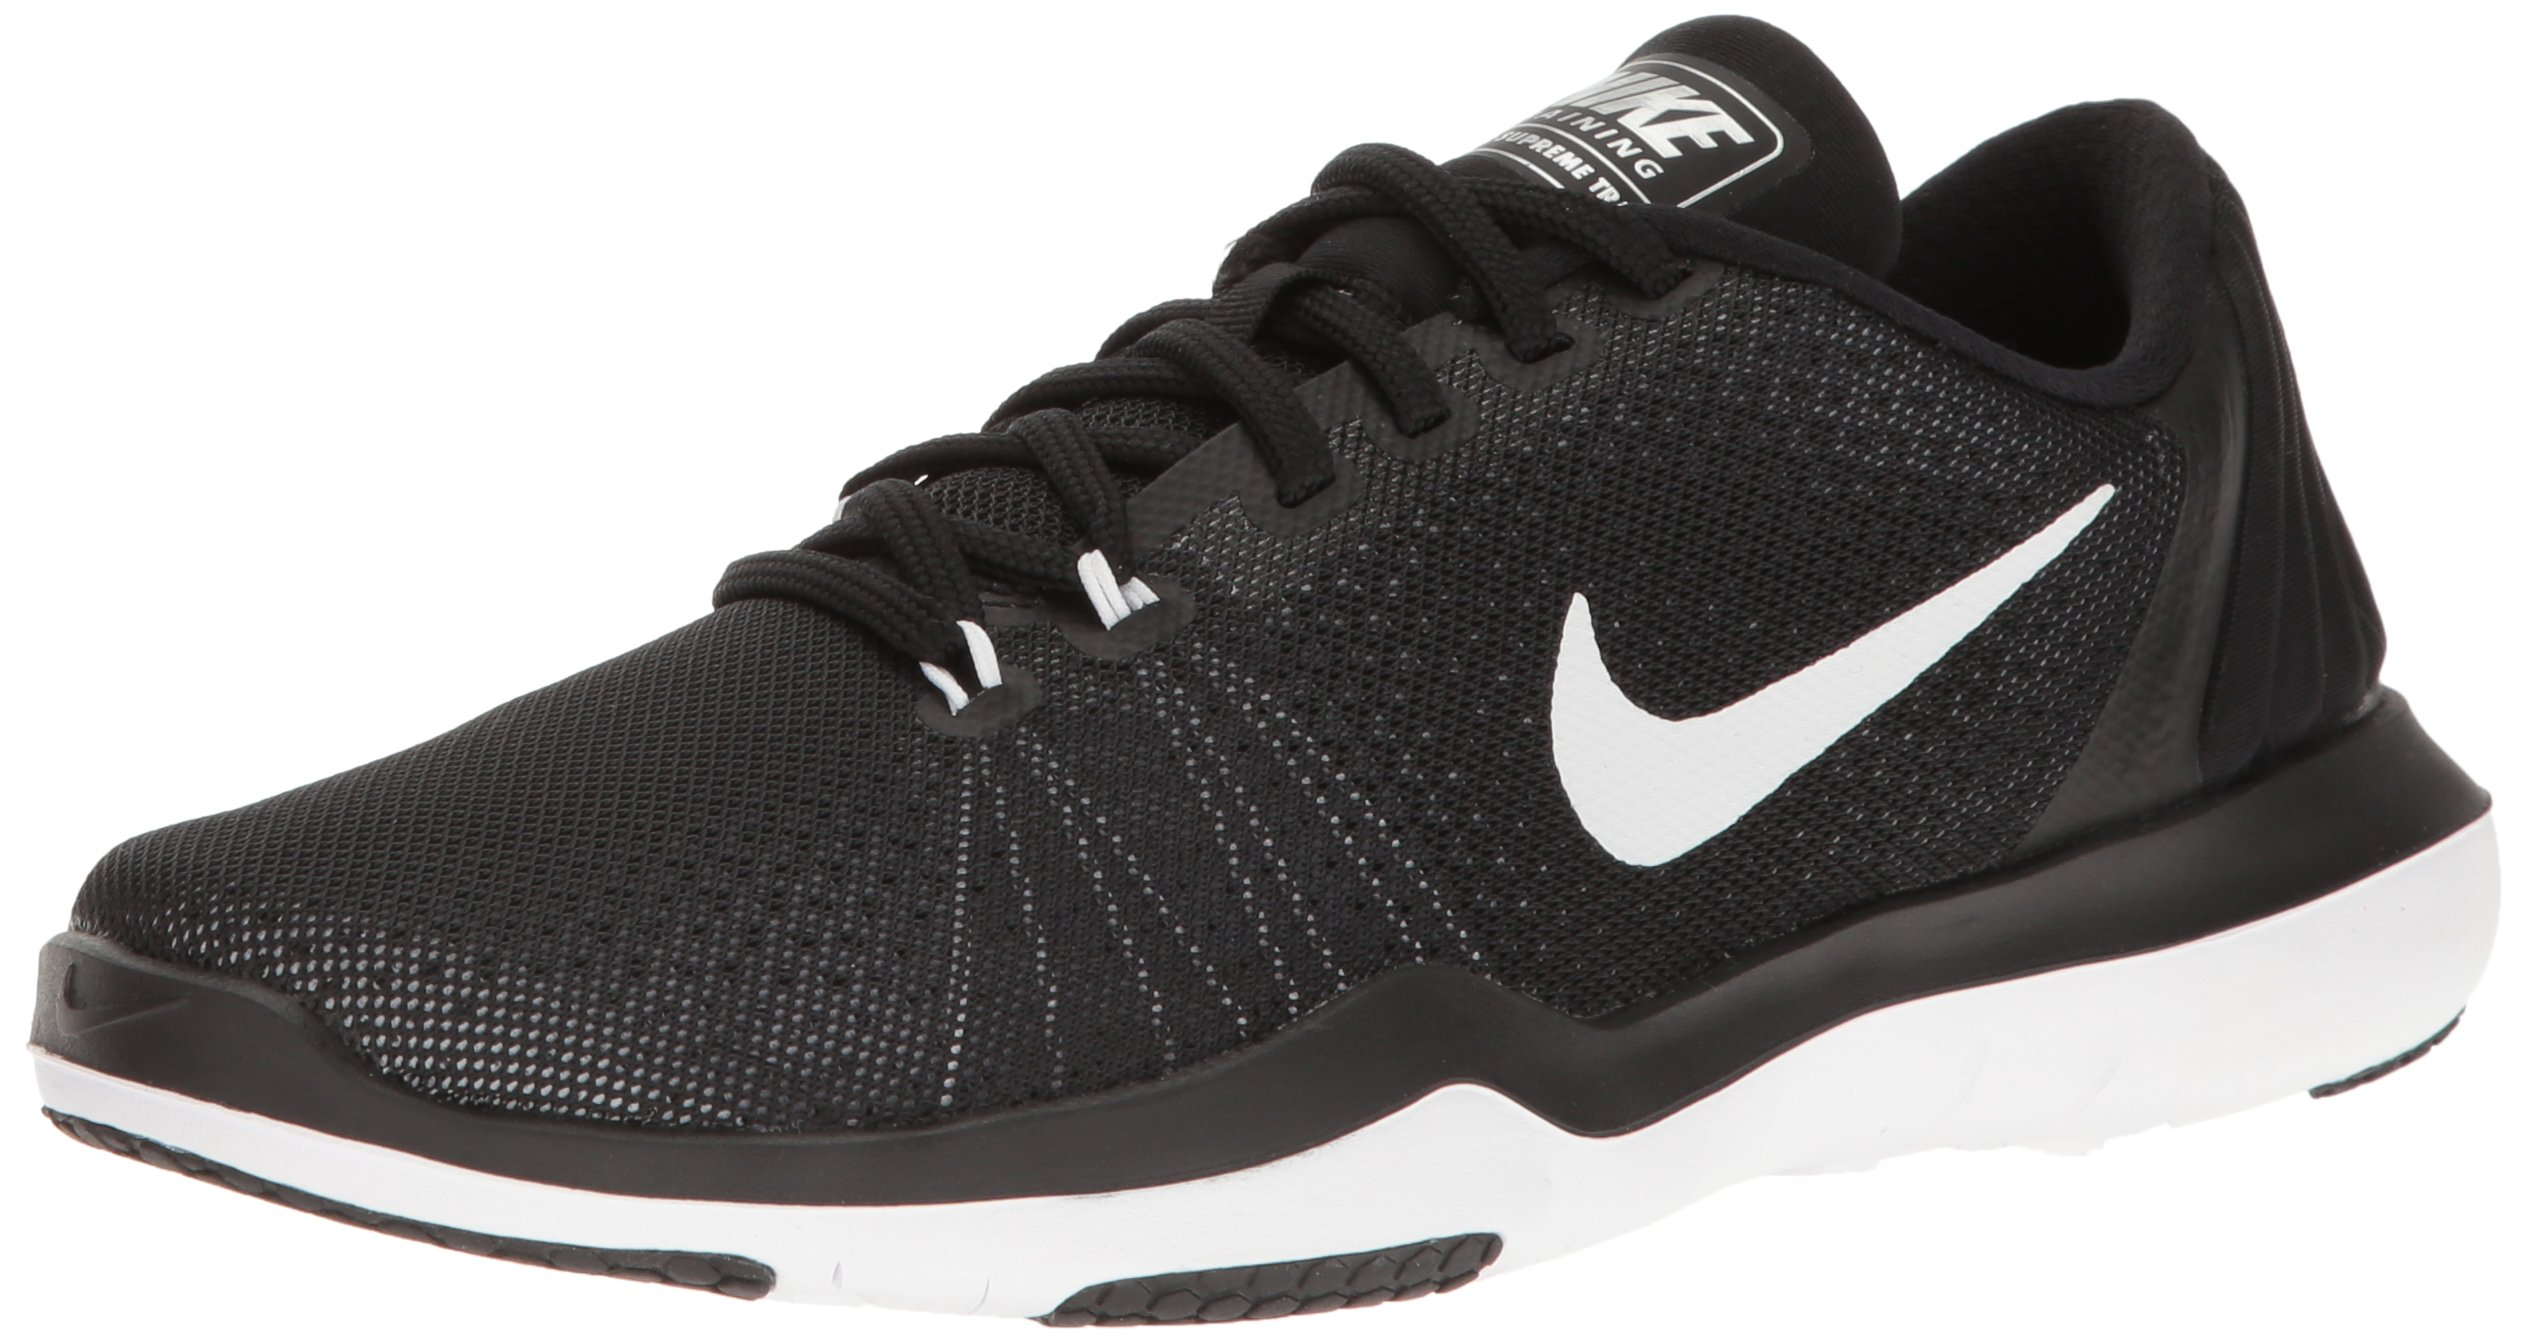 Sí misma importar balsa  NIKE Women's Flex Supreme TR 5 Cross Training Shoe Black/White ...